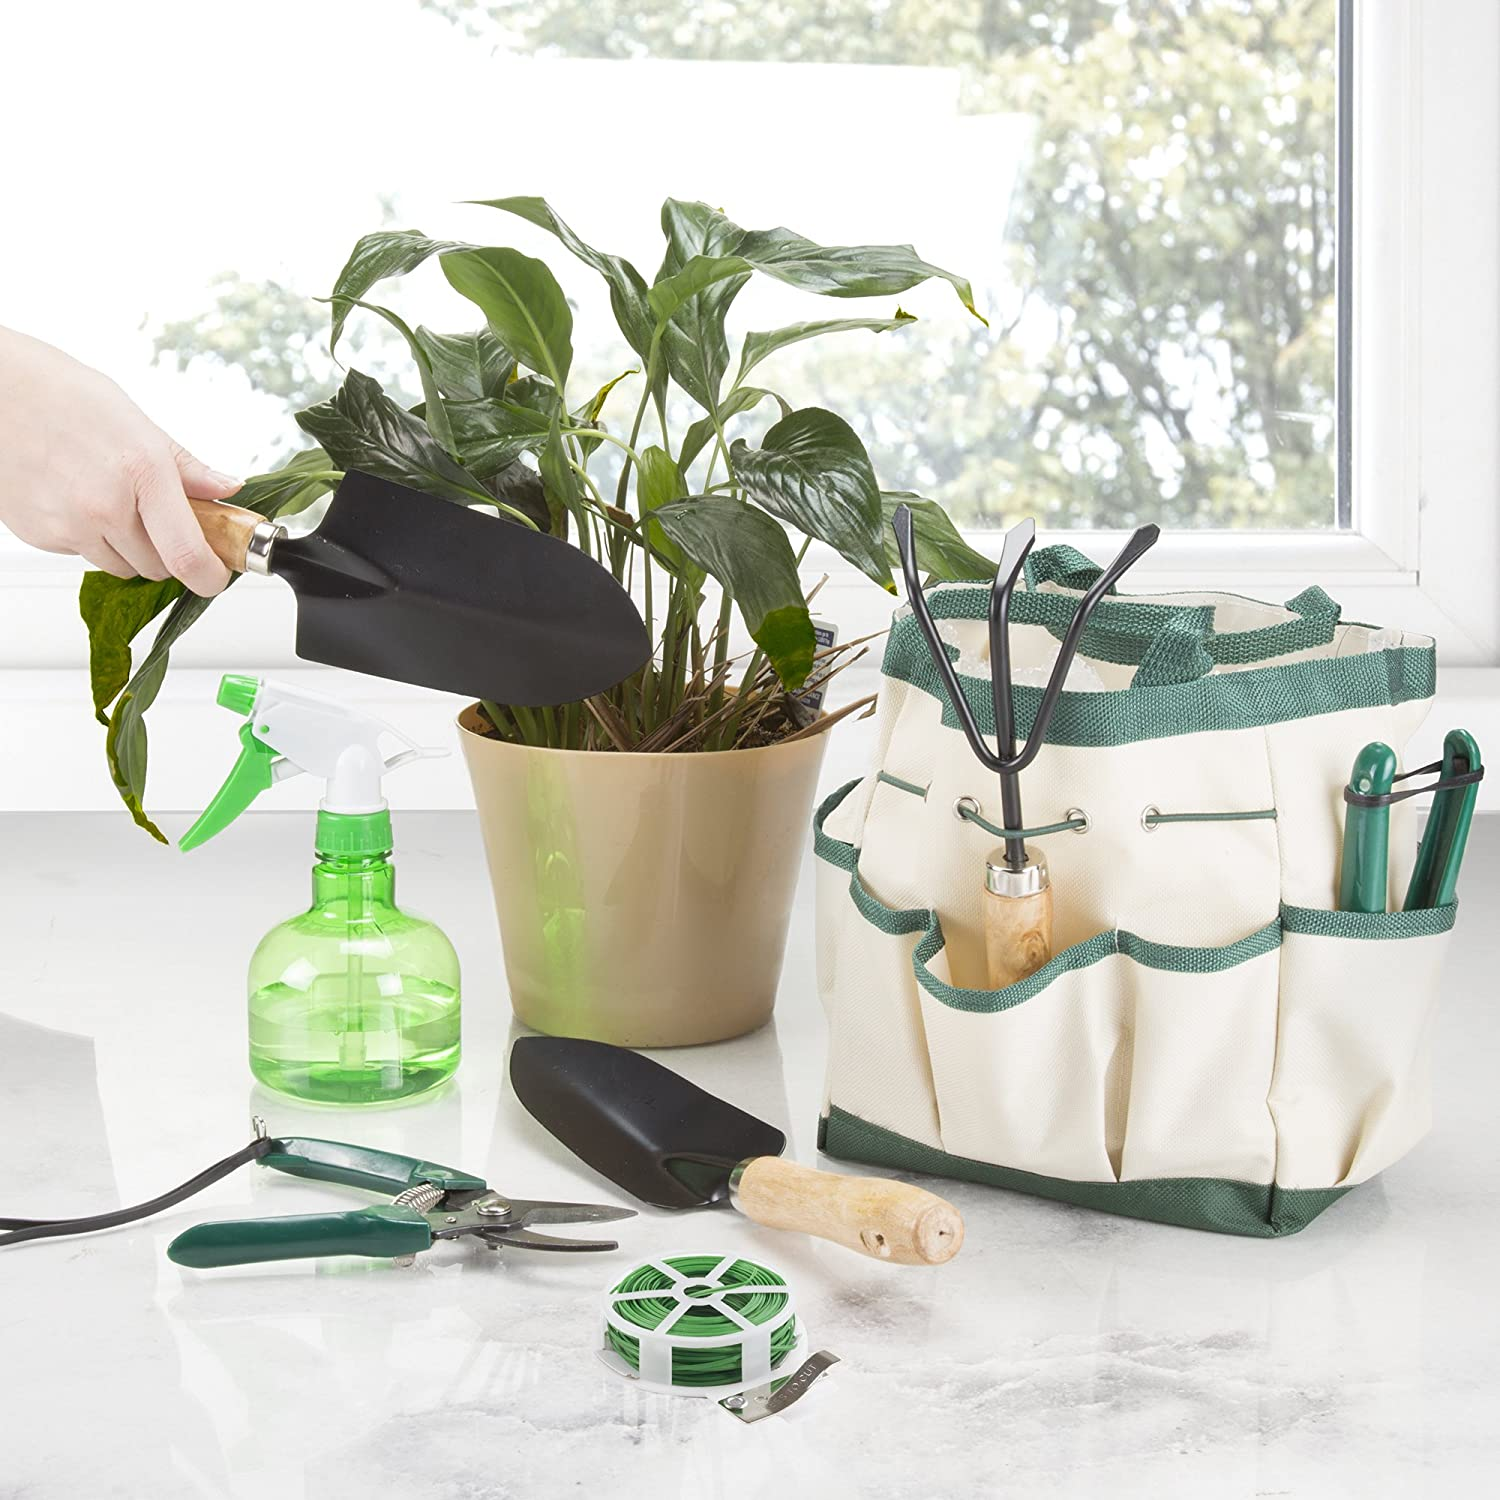 Delightful Amazon.com : Pure Garden 75 08002 8 Piece Garden Tool And Tote Set : Garden  U0026 Outdoor